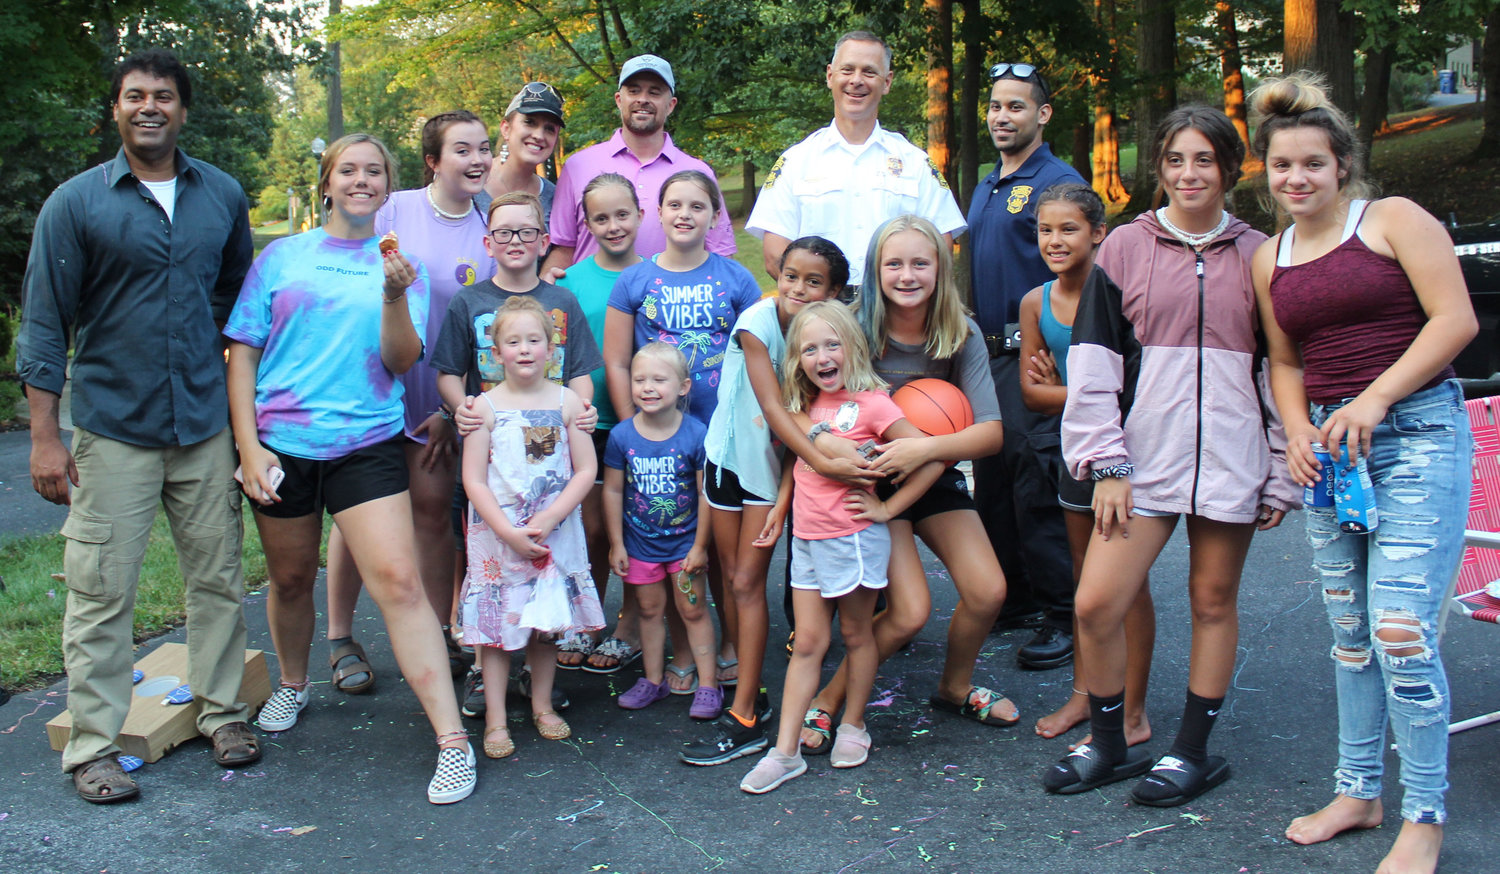 Neighbors on Timber Lane gathered for a block party during National Night Out in Lower Swatara on Aug. 6.